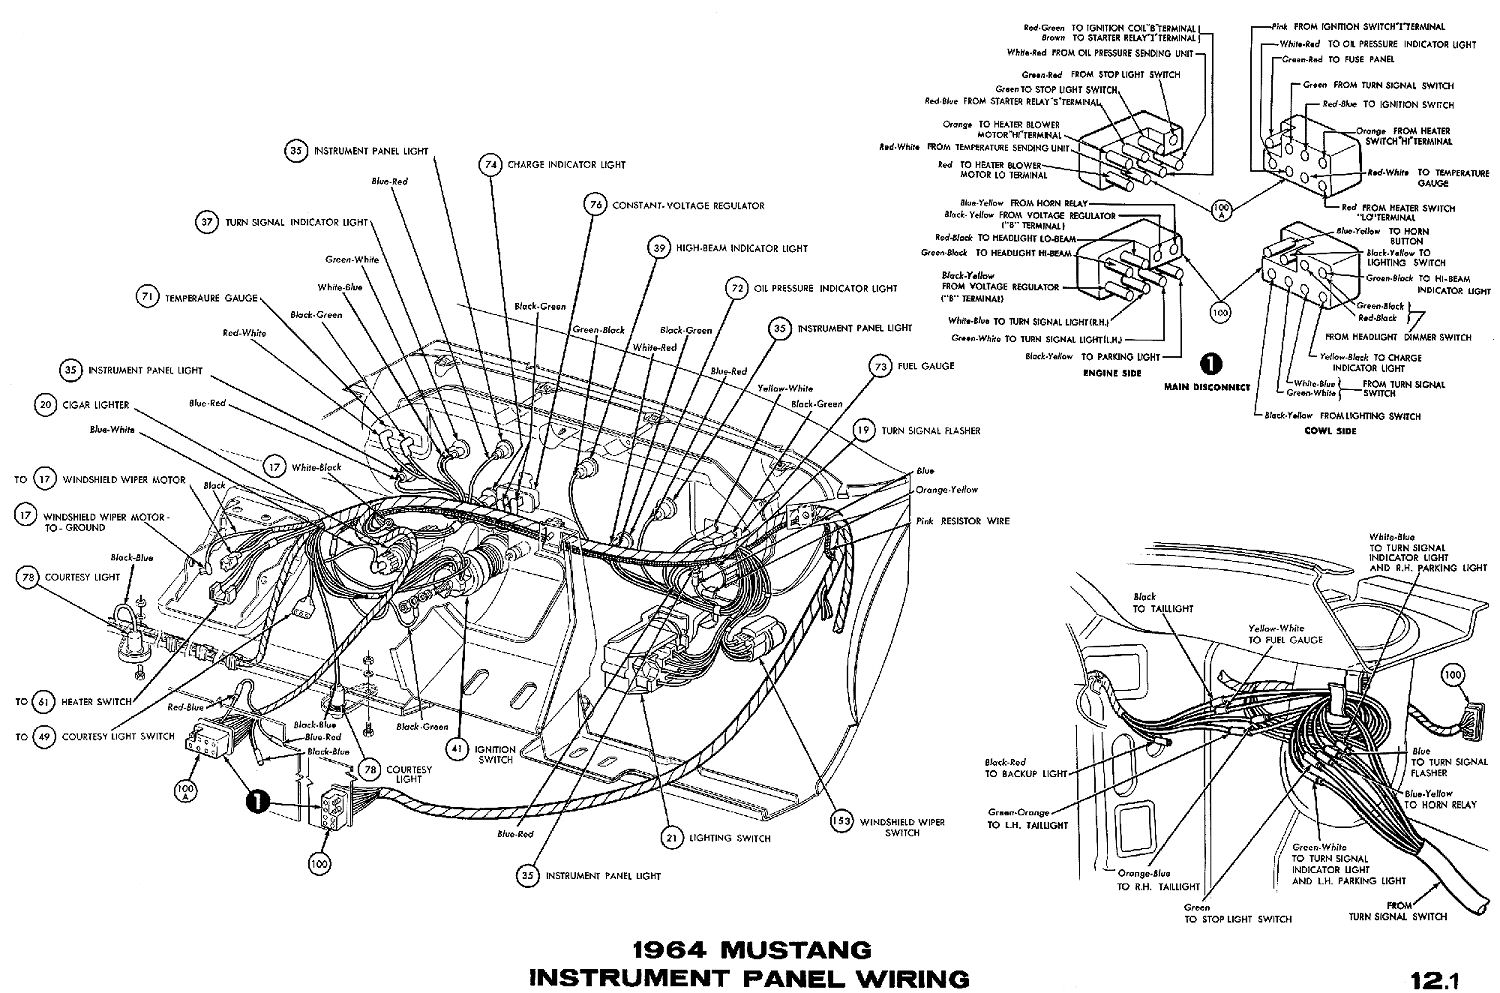 1965 mustang horn wiring diagram 2 way switch australia el-ritningar!